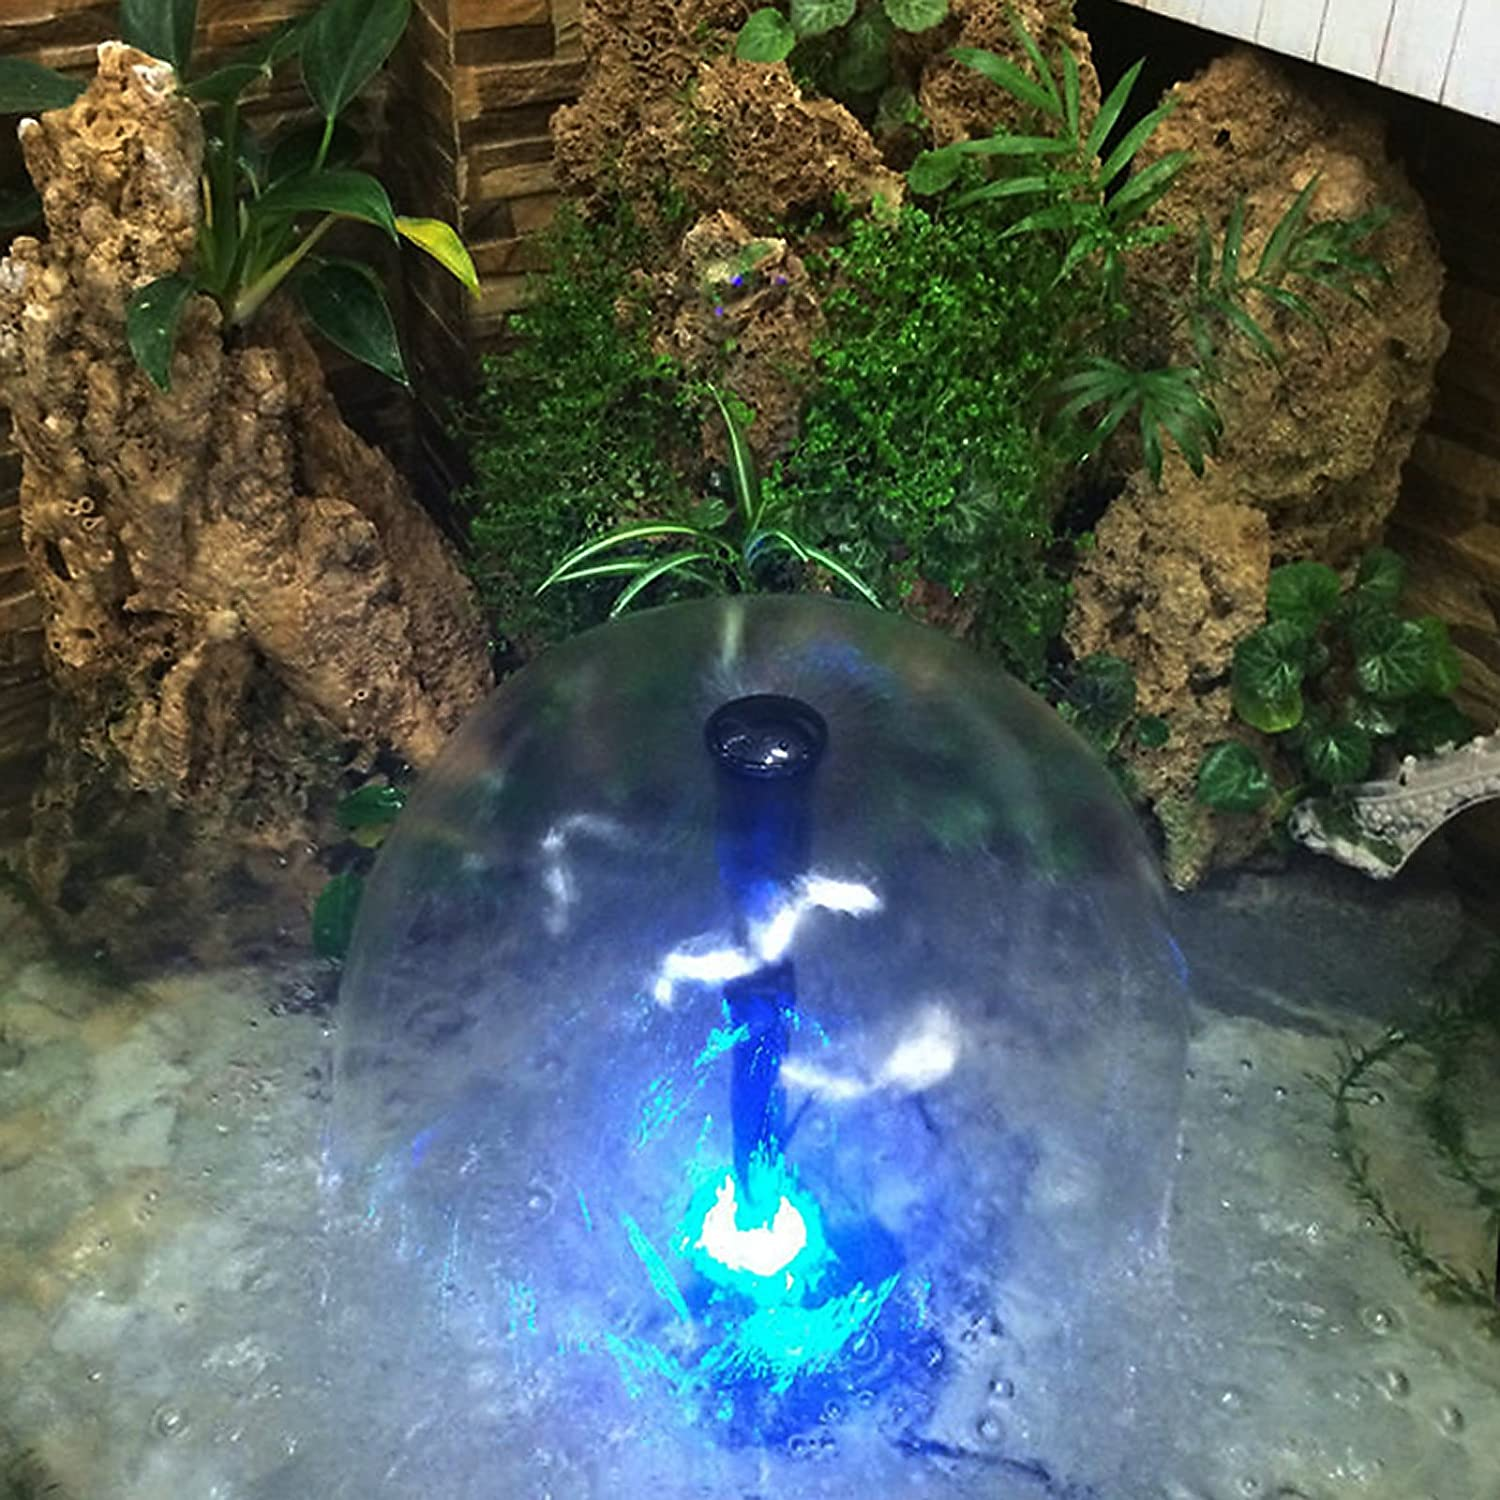 Water Fountain Pump 140GPH with 3 Sprinkler Heads Outdoor Submersible Birdbath Pump (15W; 4 Colors Light Ring, Telescopic Tube): Home Improvement